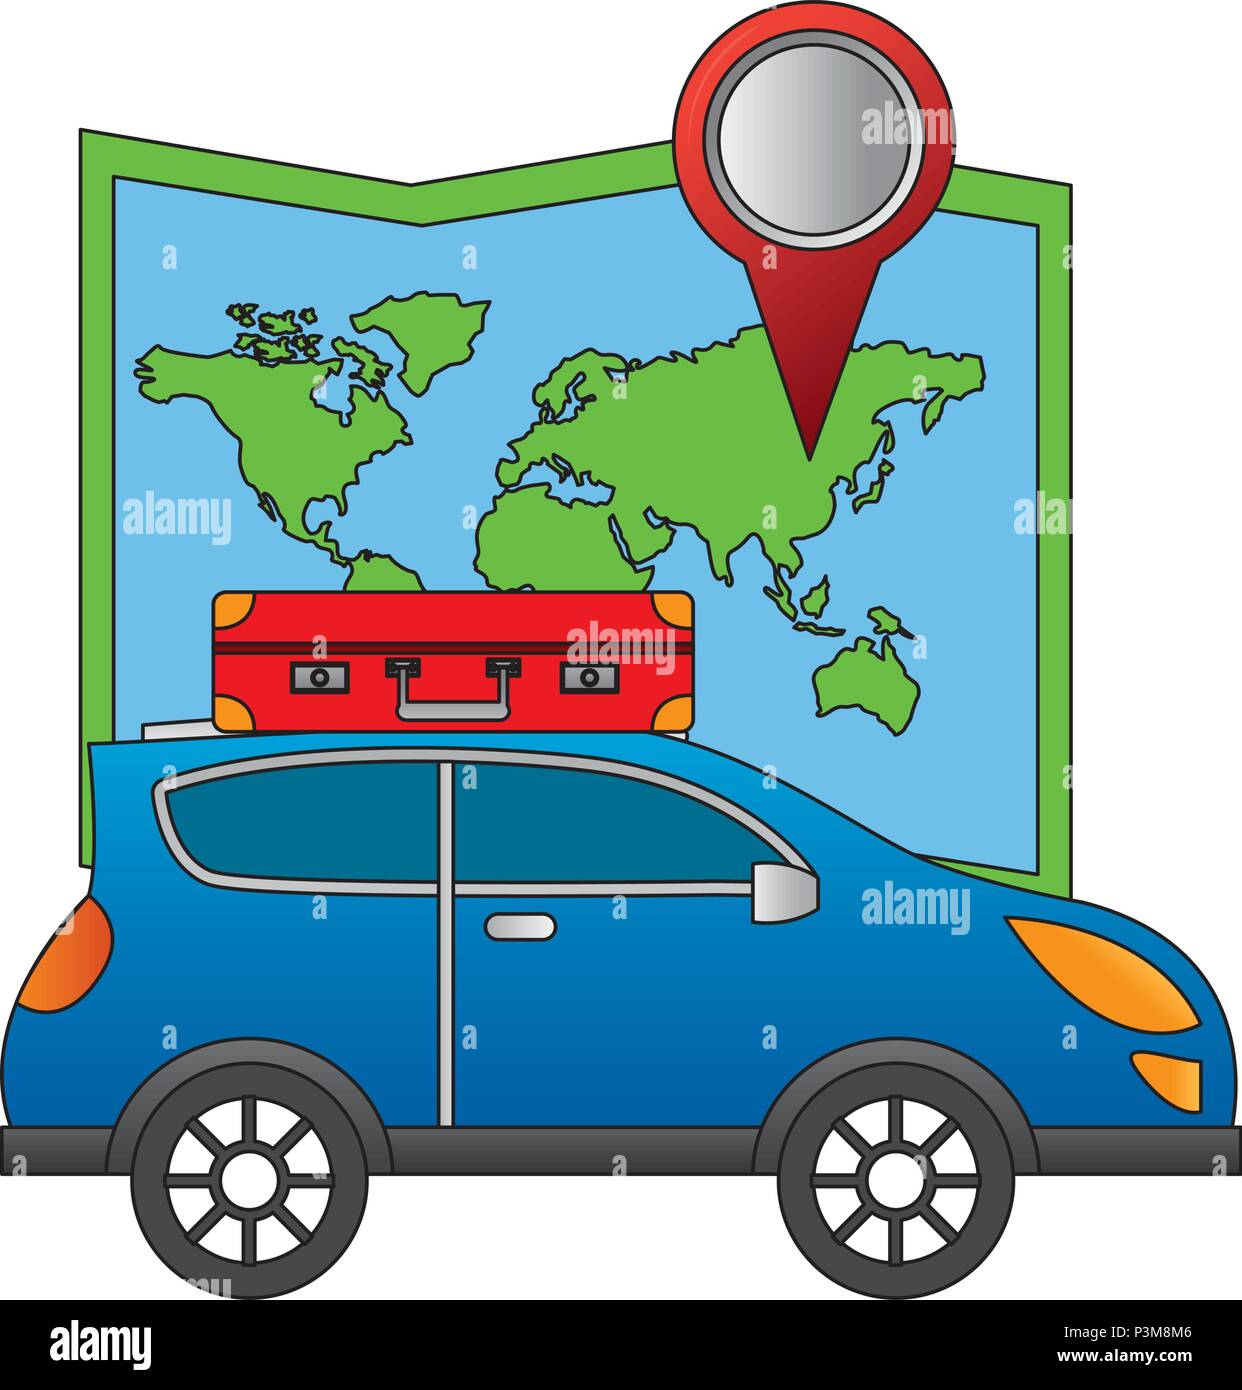 automobile with suitcase on roof navigation map location - Stock Image